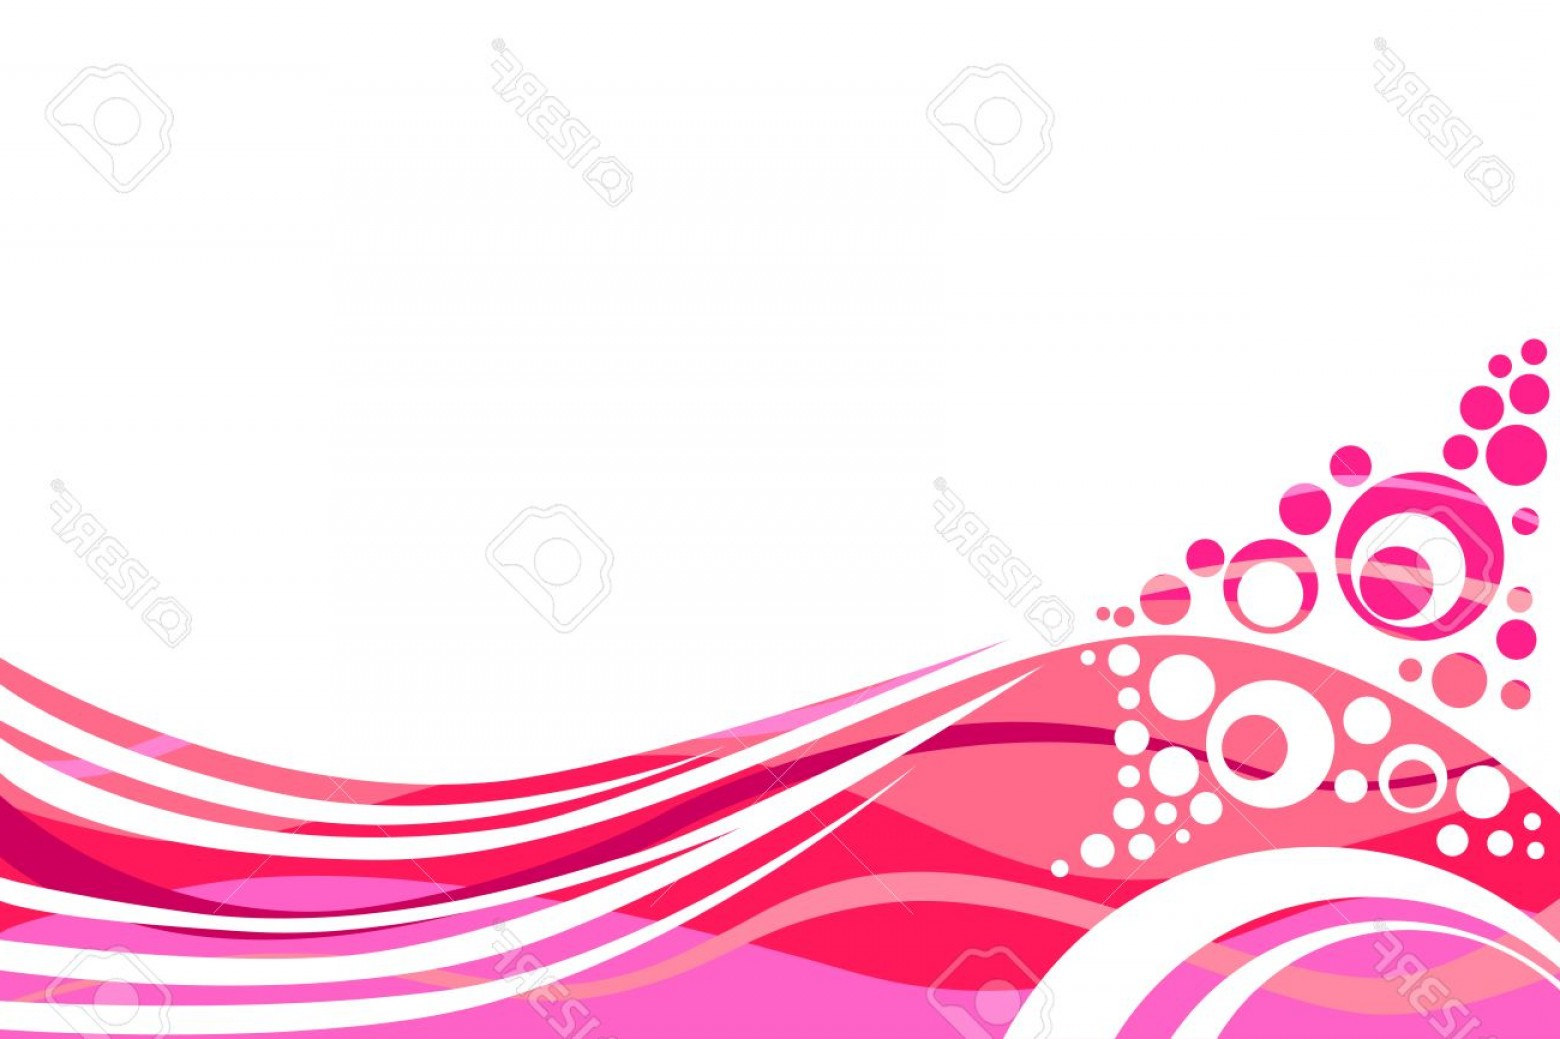 Backgroung Vector: Photostock Vector Pink And Red Lines And Circles Abstract Background Vector